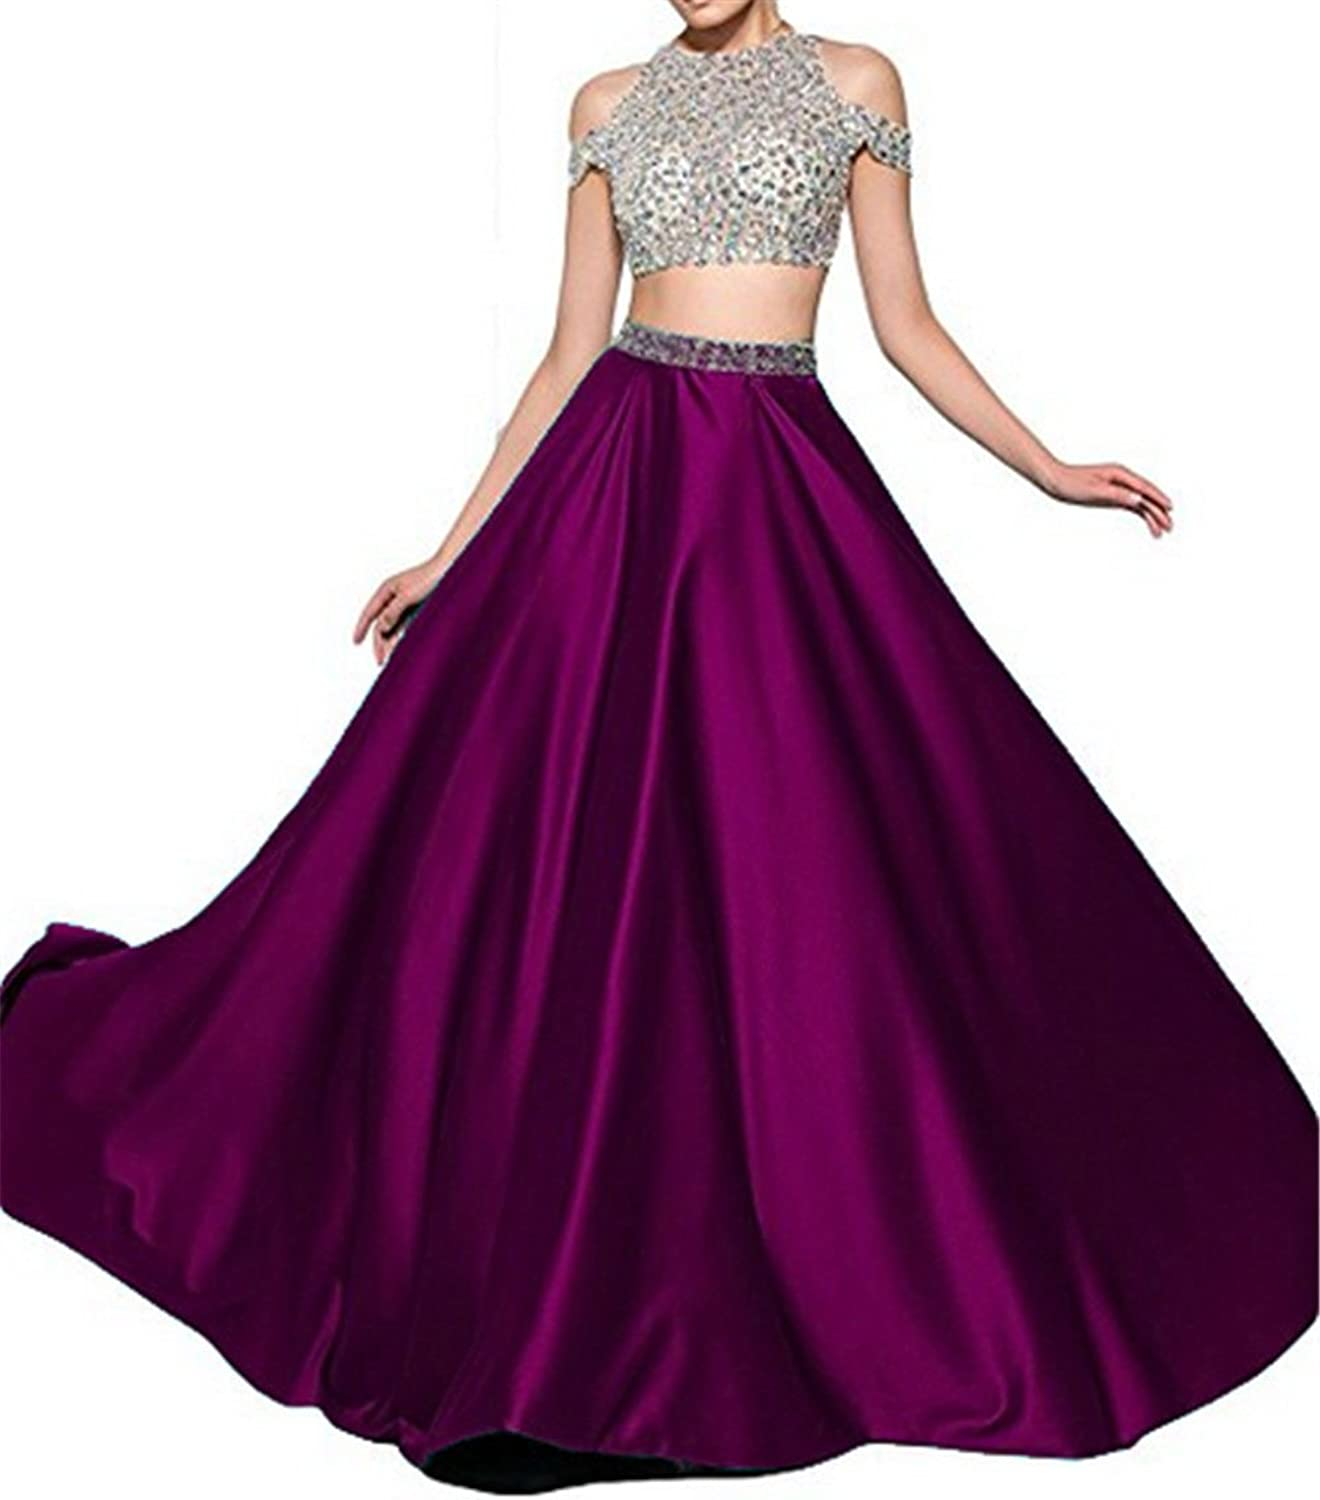 Uryouthstyle Sexy Prom Dresses 2 Pieces Long Prom Gown 2017